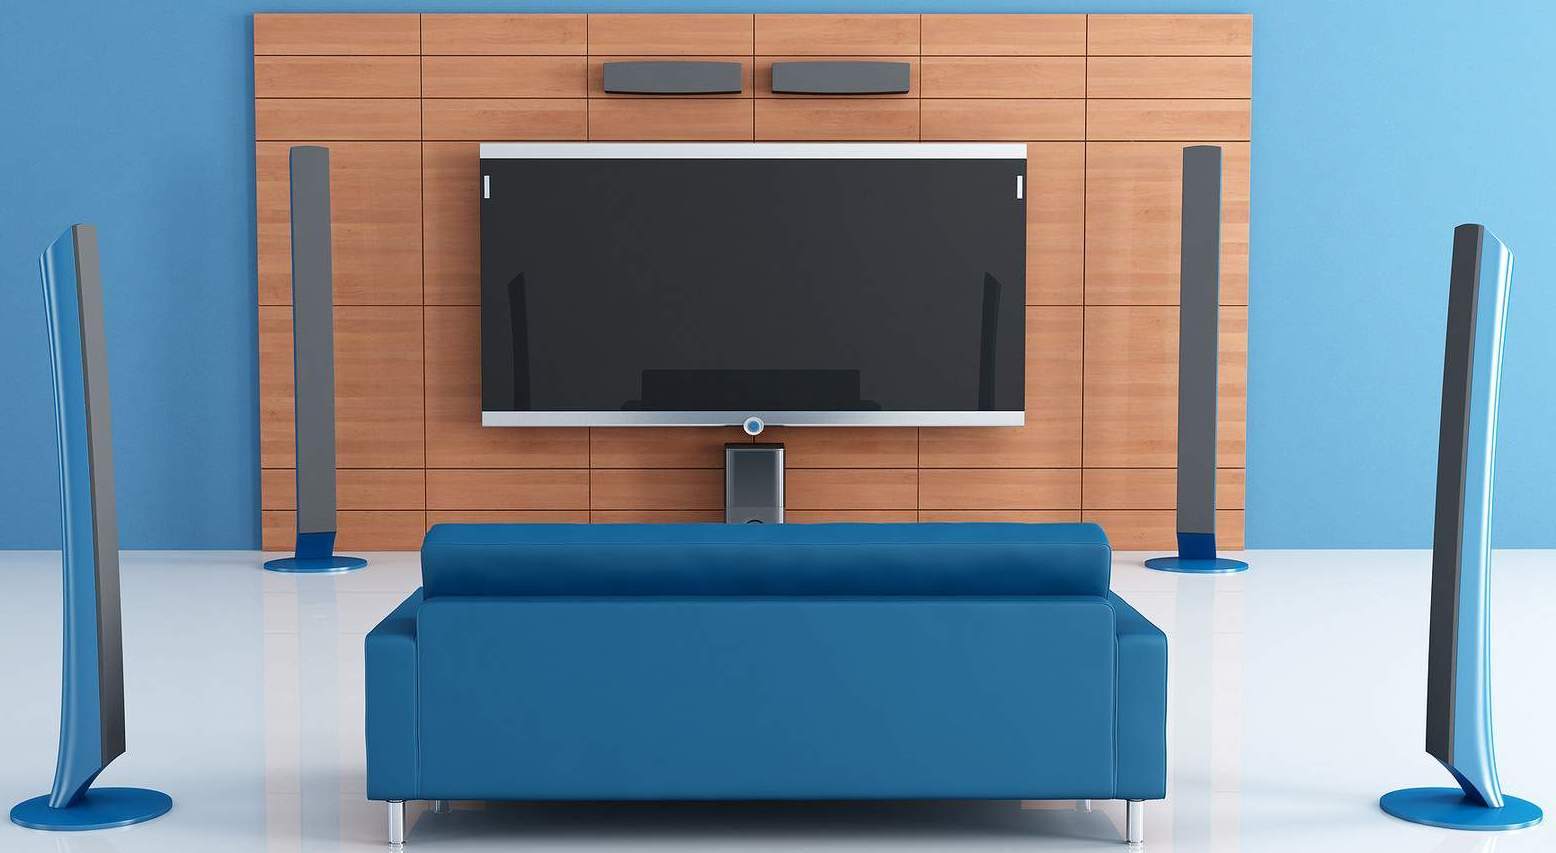 Bose Home Cinema 5 Best Home Theater Systems In 2021 - Top Rated Surround Sound Systems With Wireless Speakers Reviewed: - Skingroom